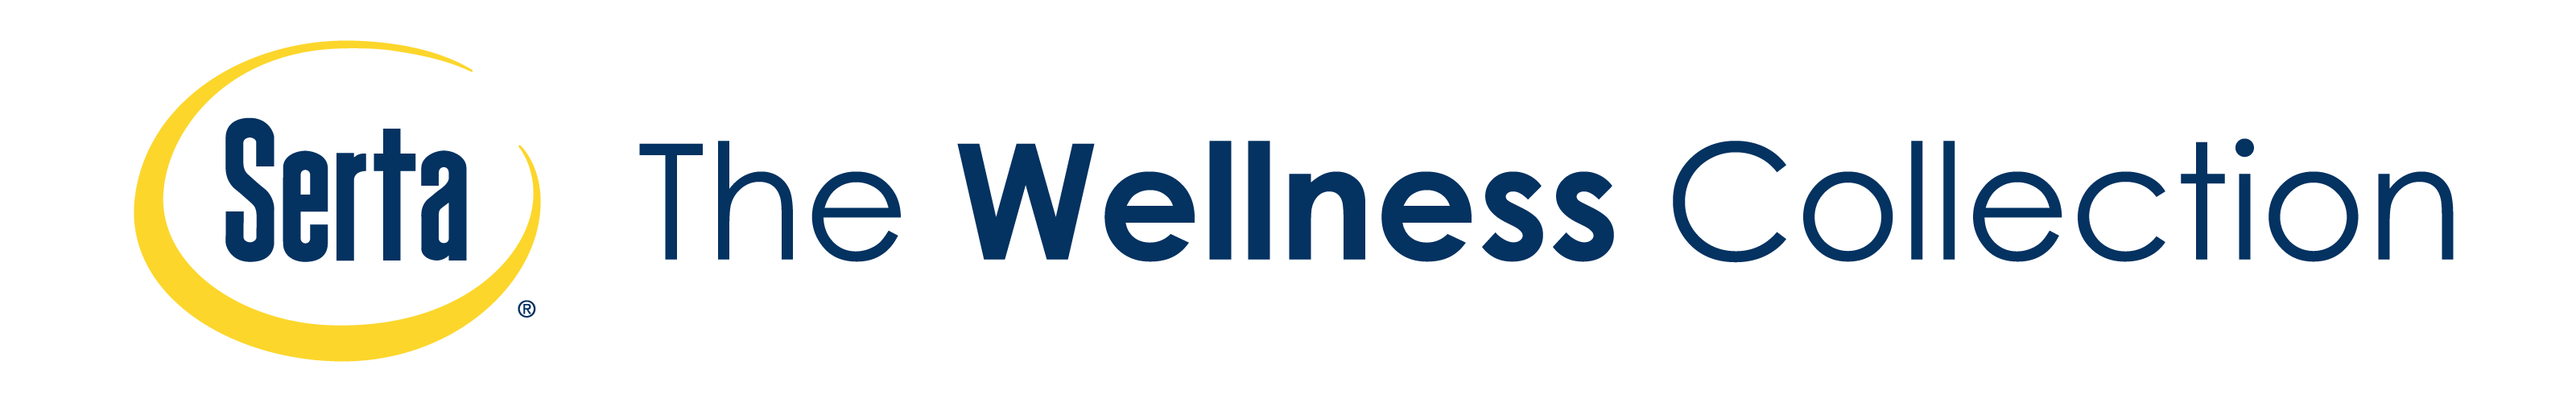 wellness_collection_long